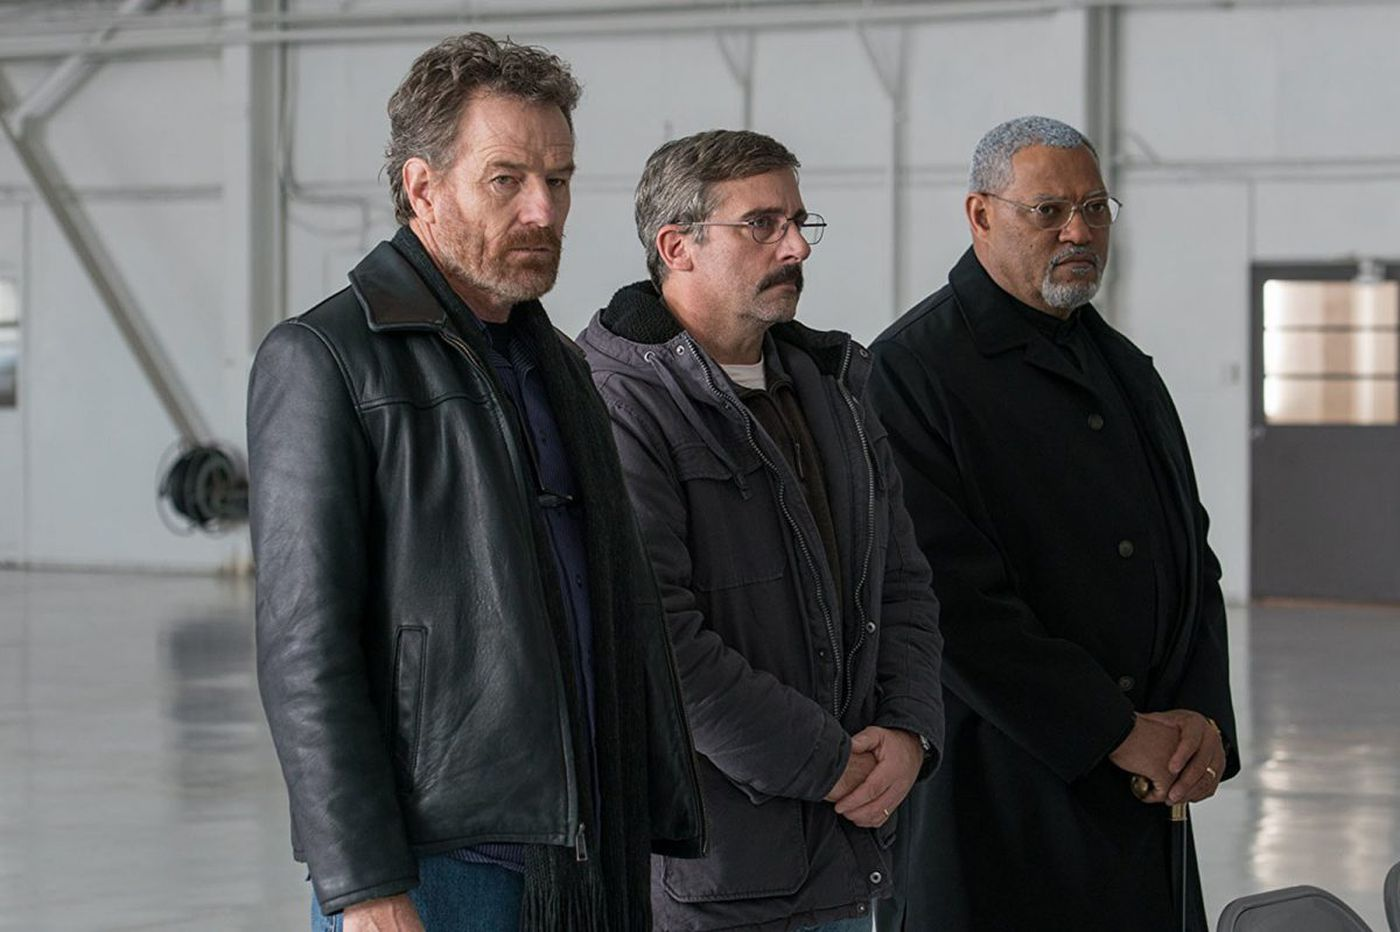 Bryan Cranston, Steve Carell and Laurence Fishburne get bailed out by supporting cast in mournful 'Last Flag Flying'